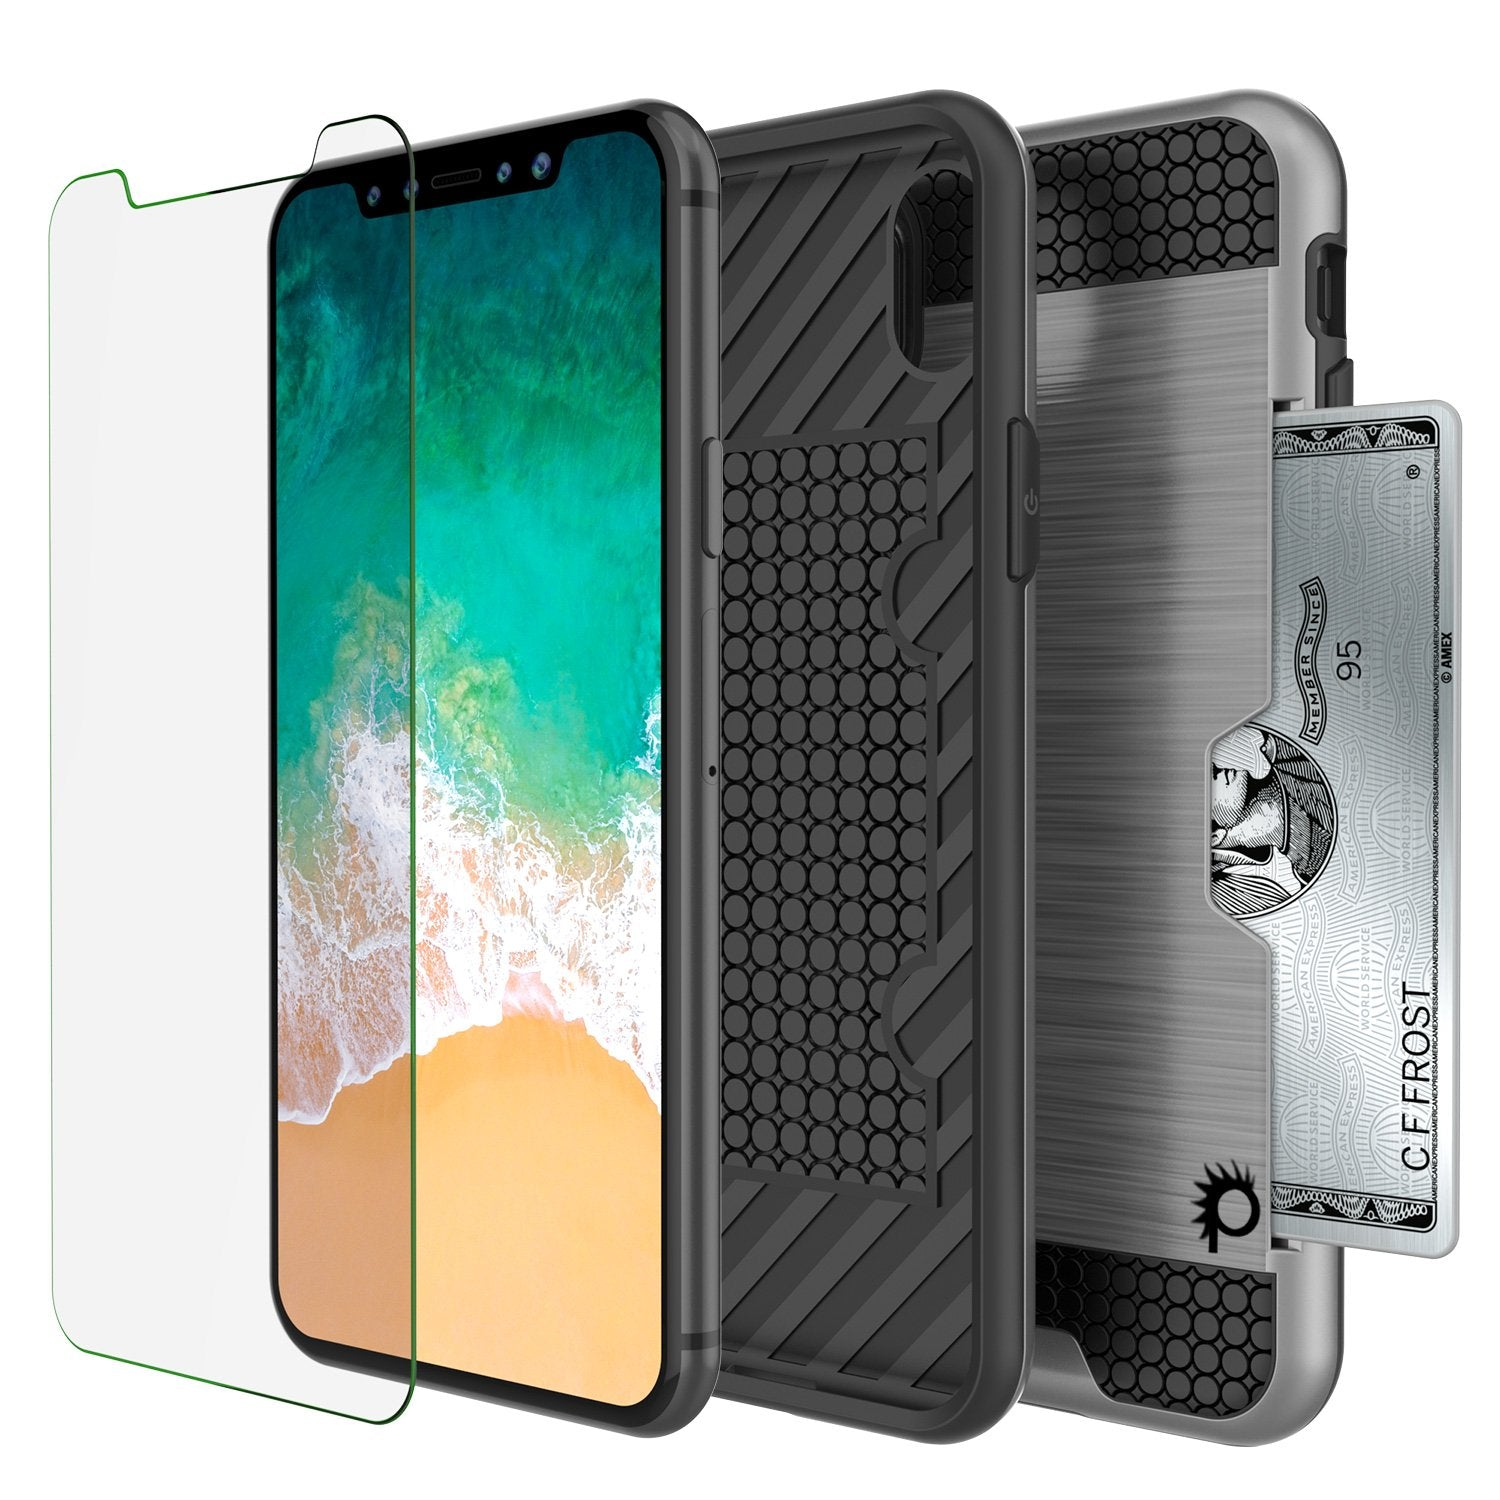 iPhone X Case, PUNKcase [SLOT Series] Slim Fit Dual-Layer Armor Cover & Tempered Glass PUNKSHIELD Screen Protector for Apple iPhone X [Silver]